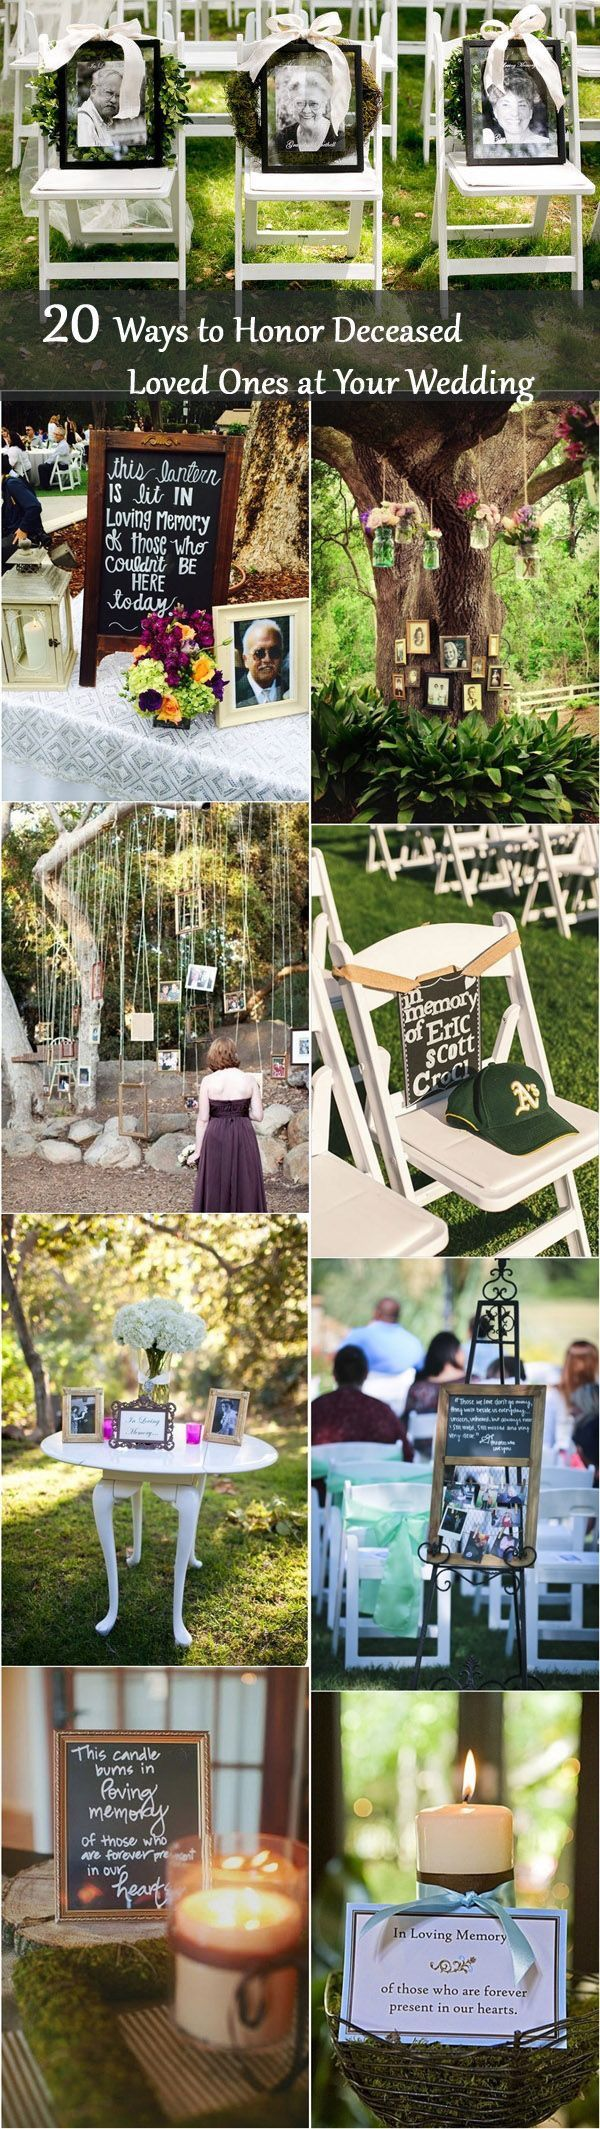 Best Wedding Images On Pinterest Marriage Wedding Stuff And